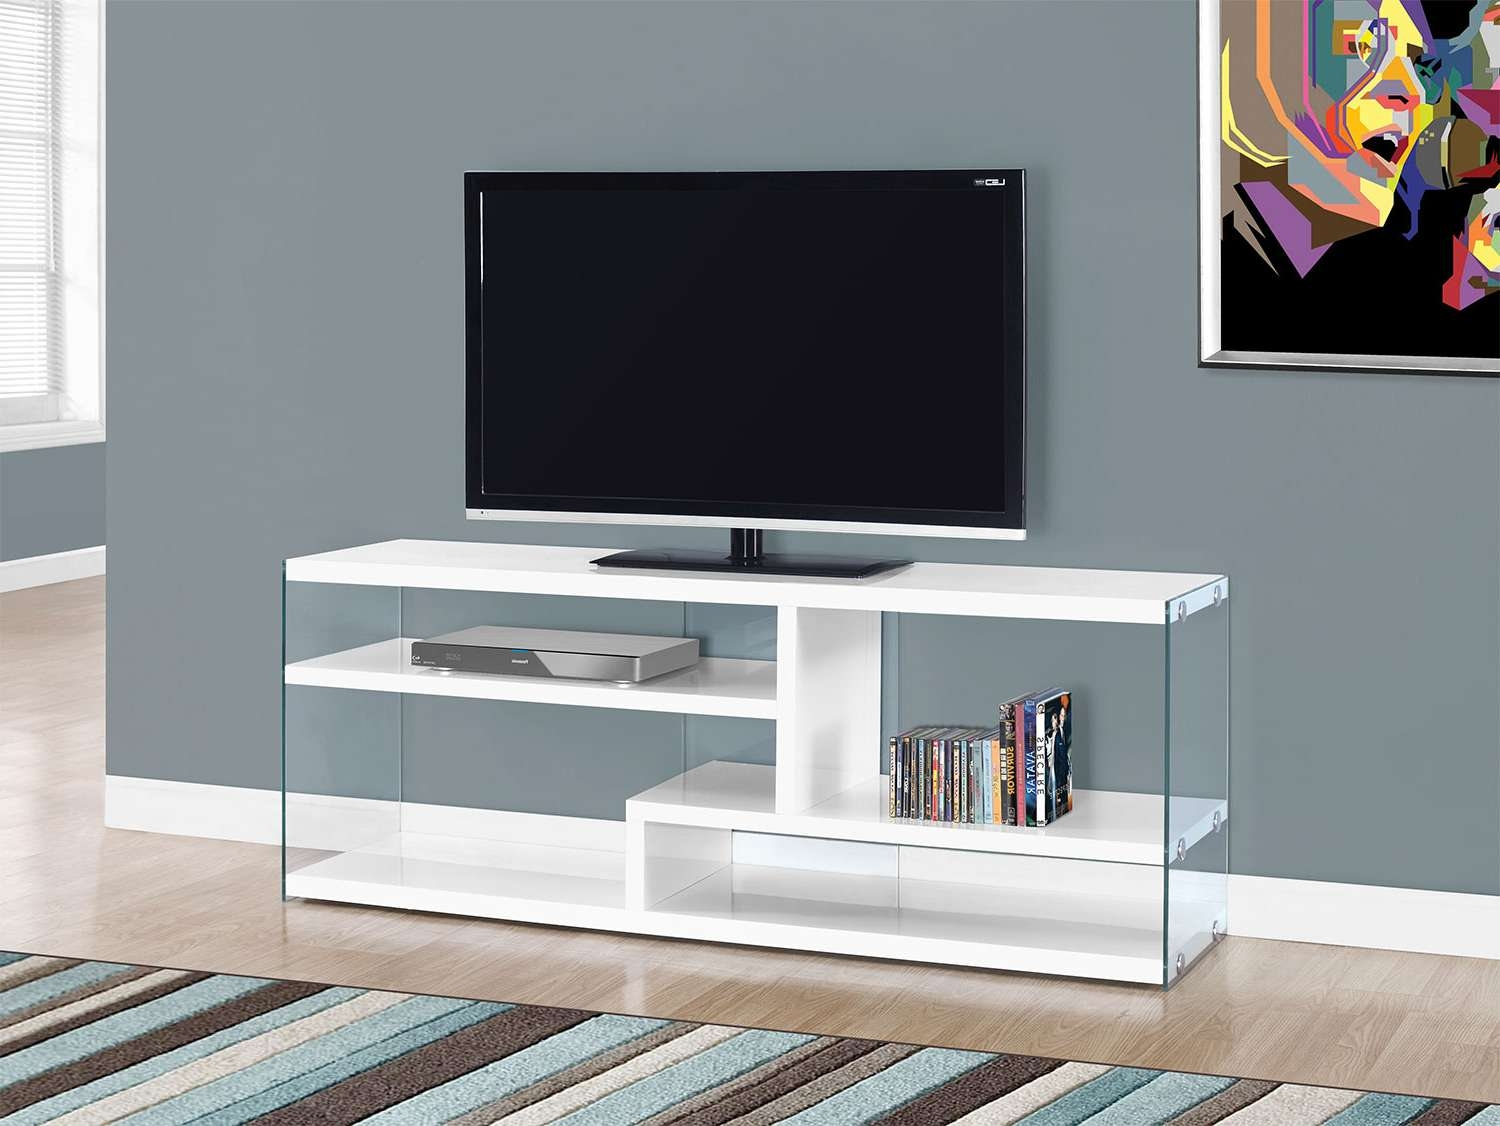 Zara Tv Stand – White | Leon's Pertaining To Glossy White Tv Stands (View 9 of 15)